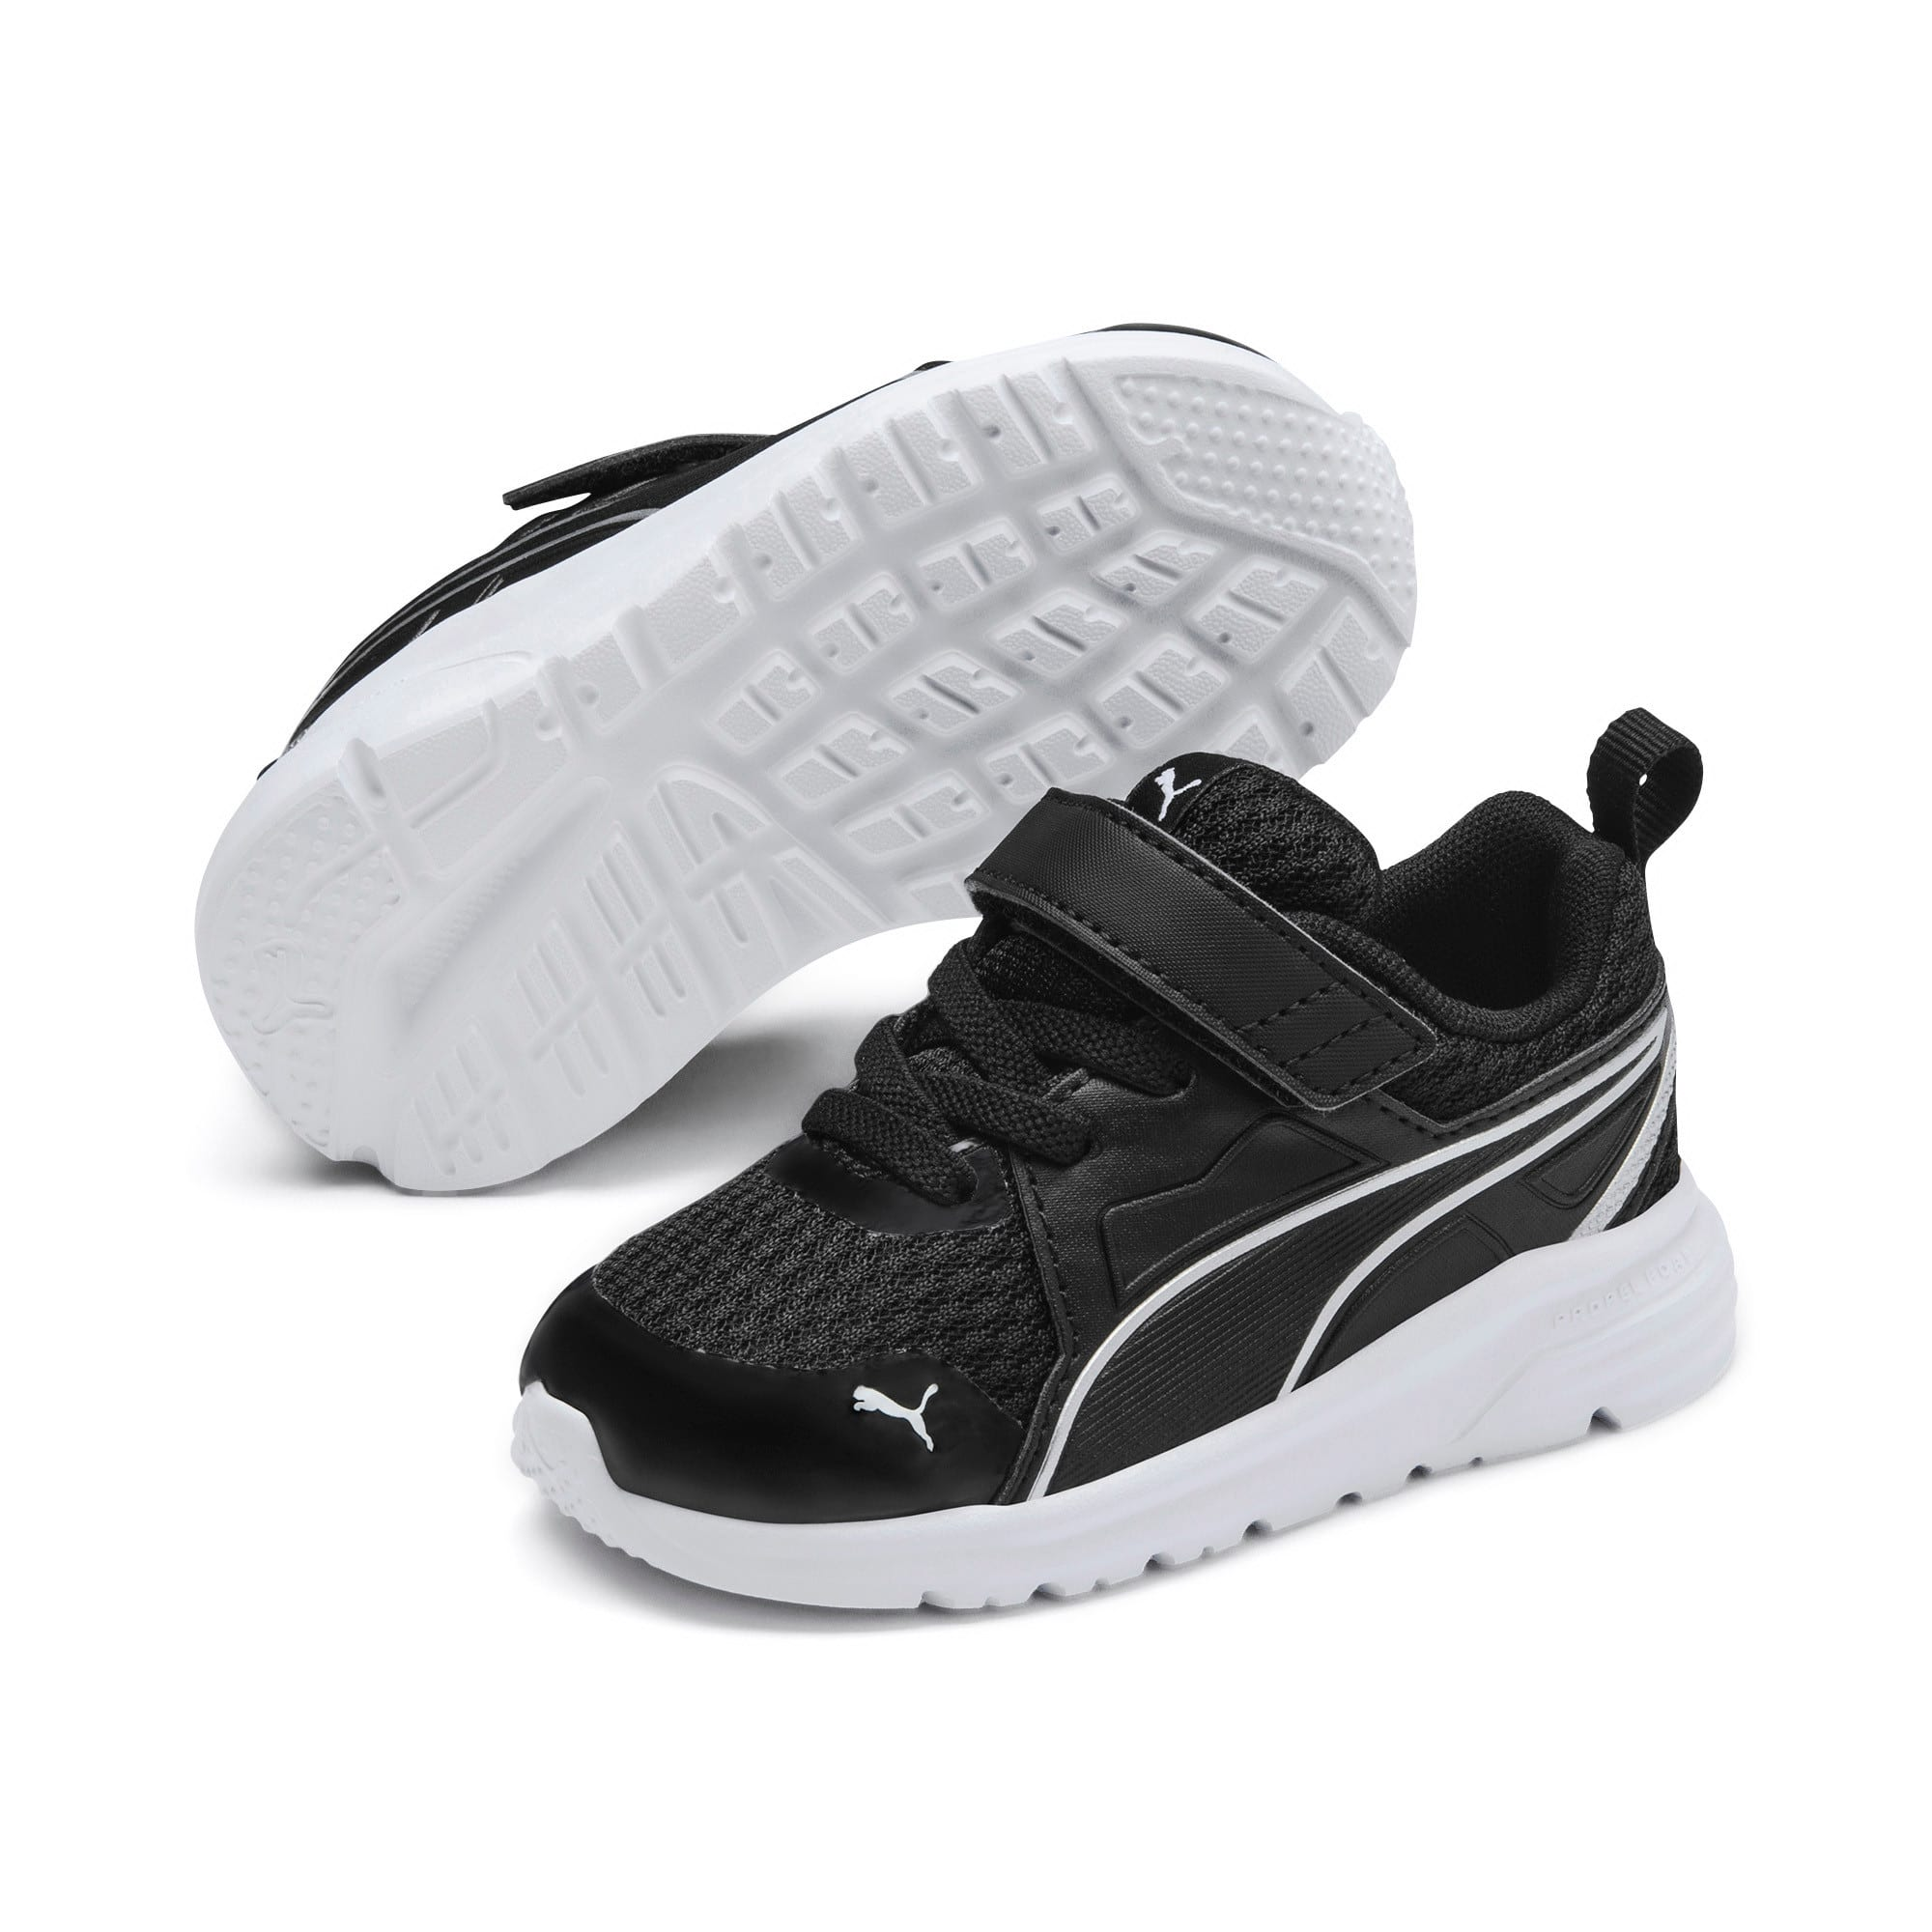 Thumbnail 2 of Pure Jogger Babies' Trainers, Black-Silver-Wht-Nrgy Yellow, medium